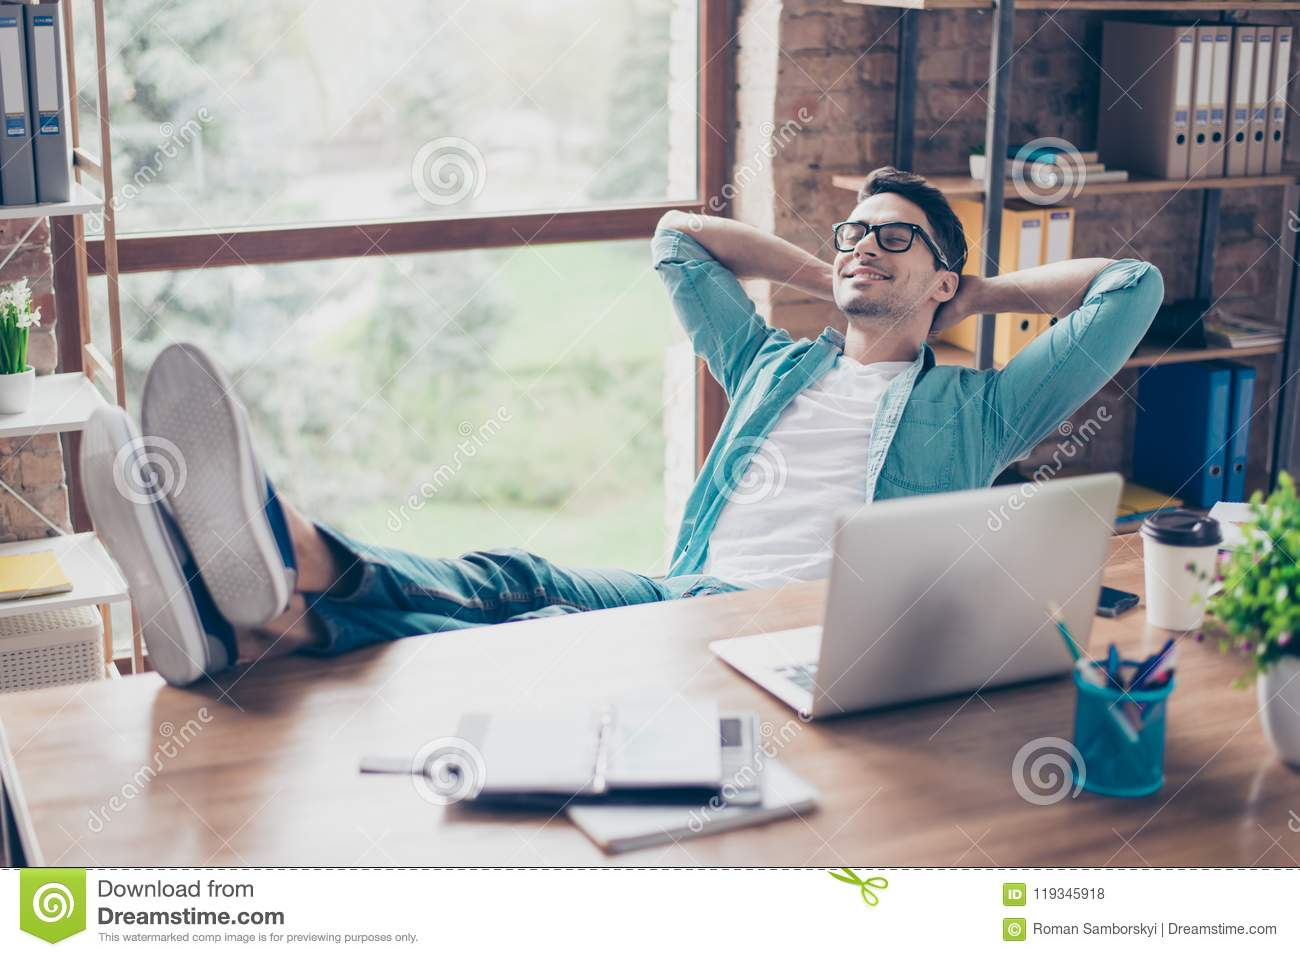 All The Tasks happy calm smiling man having a rest after solving all the